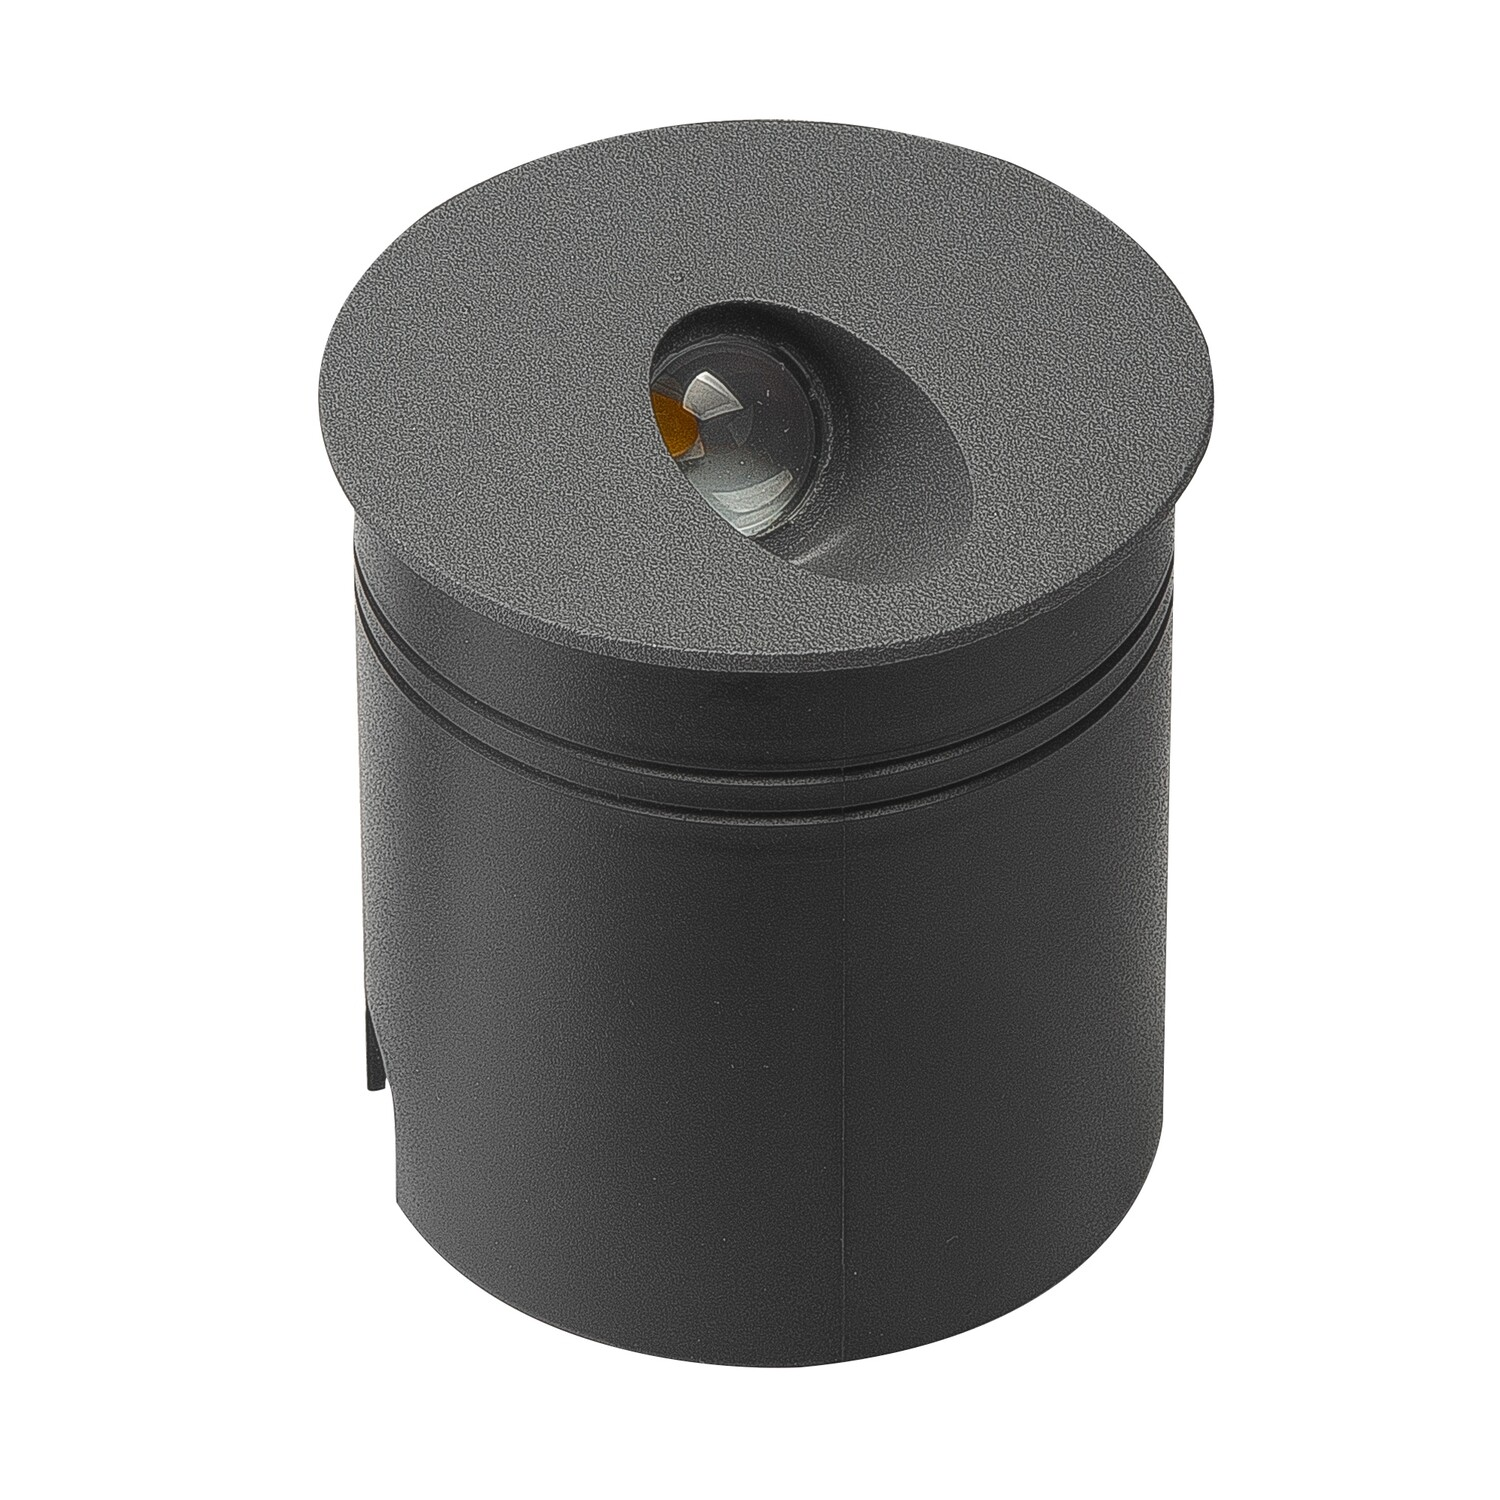 Aspen Recessed Wall Lamp Round Angle, 3W LED, 3000K, 210lm, IP65, Anthracite